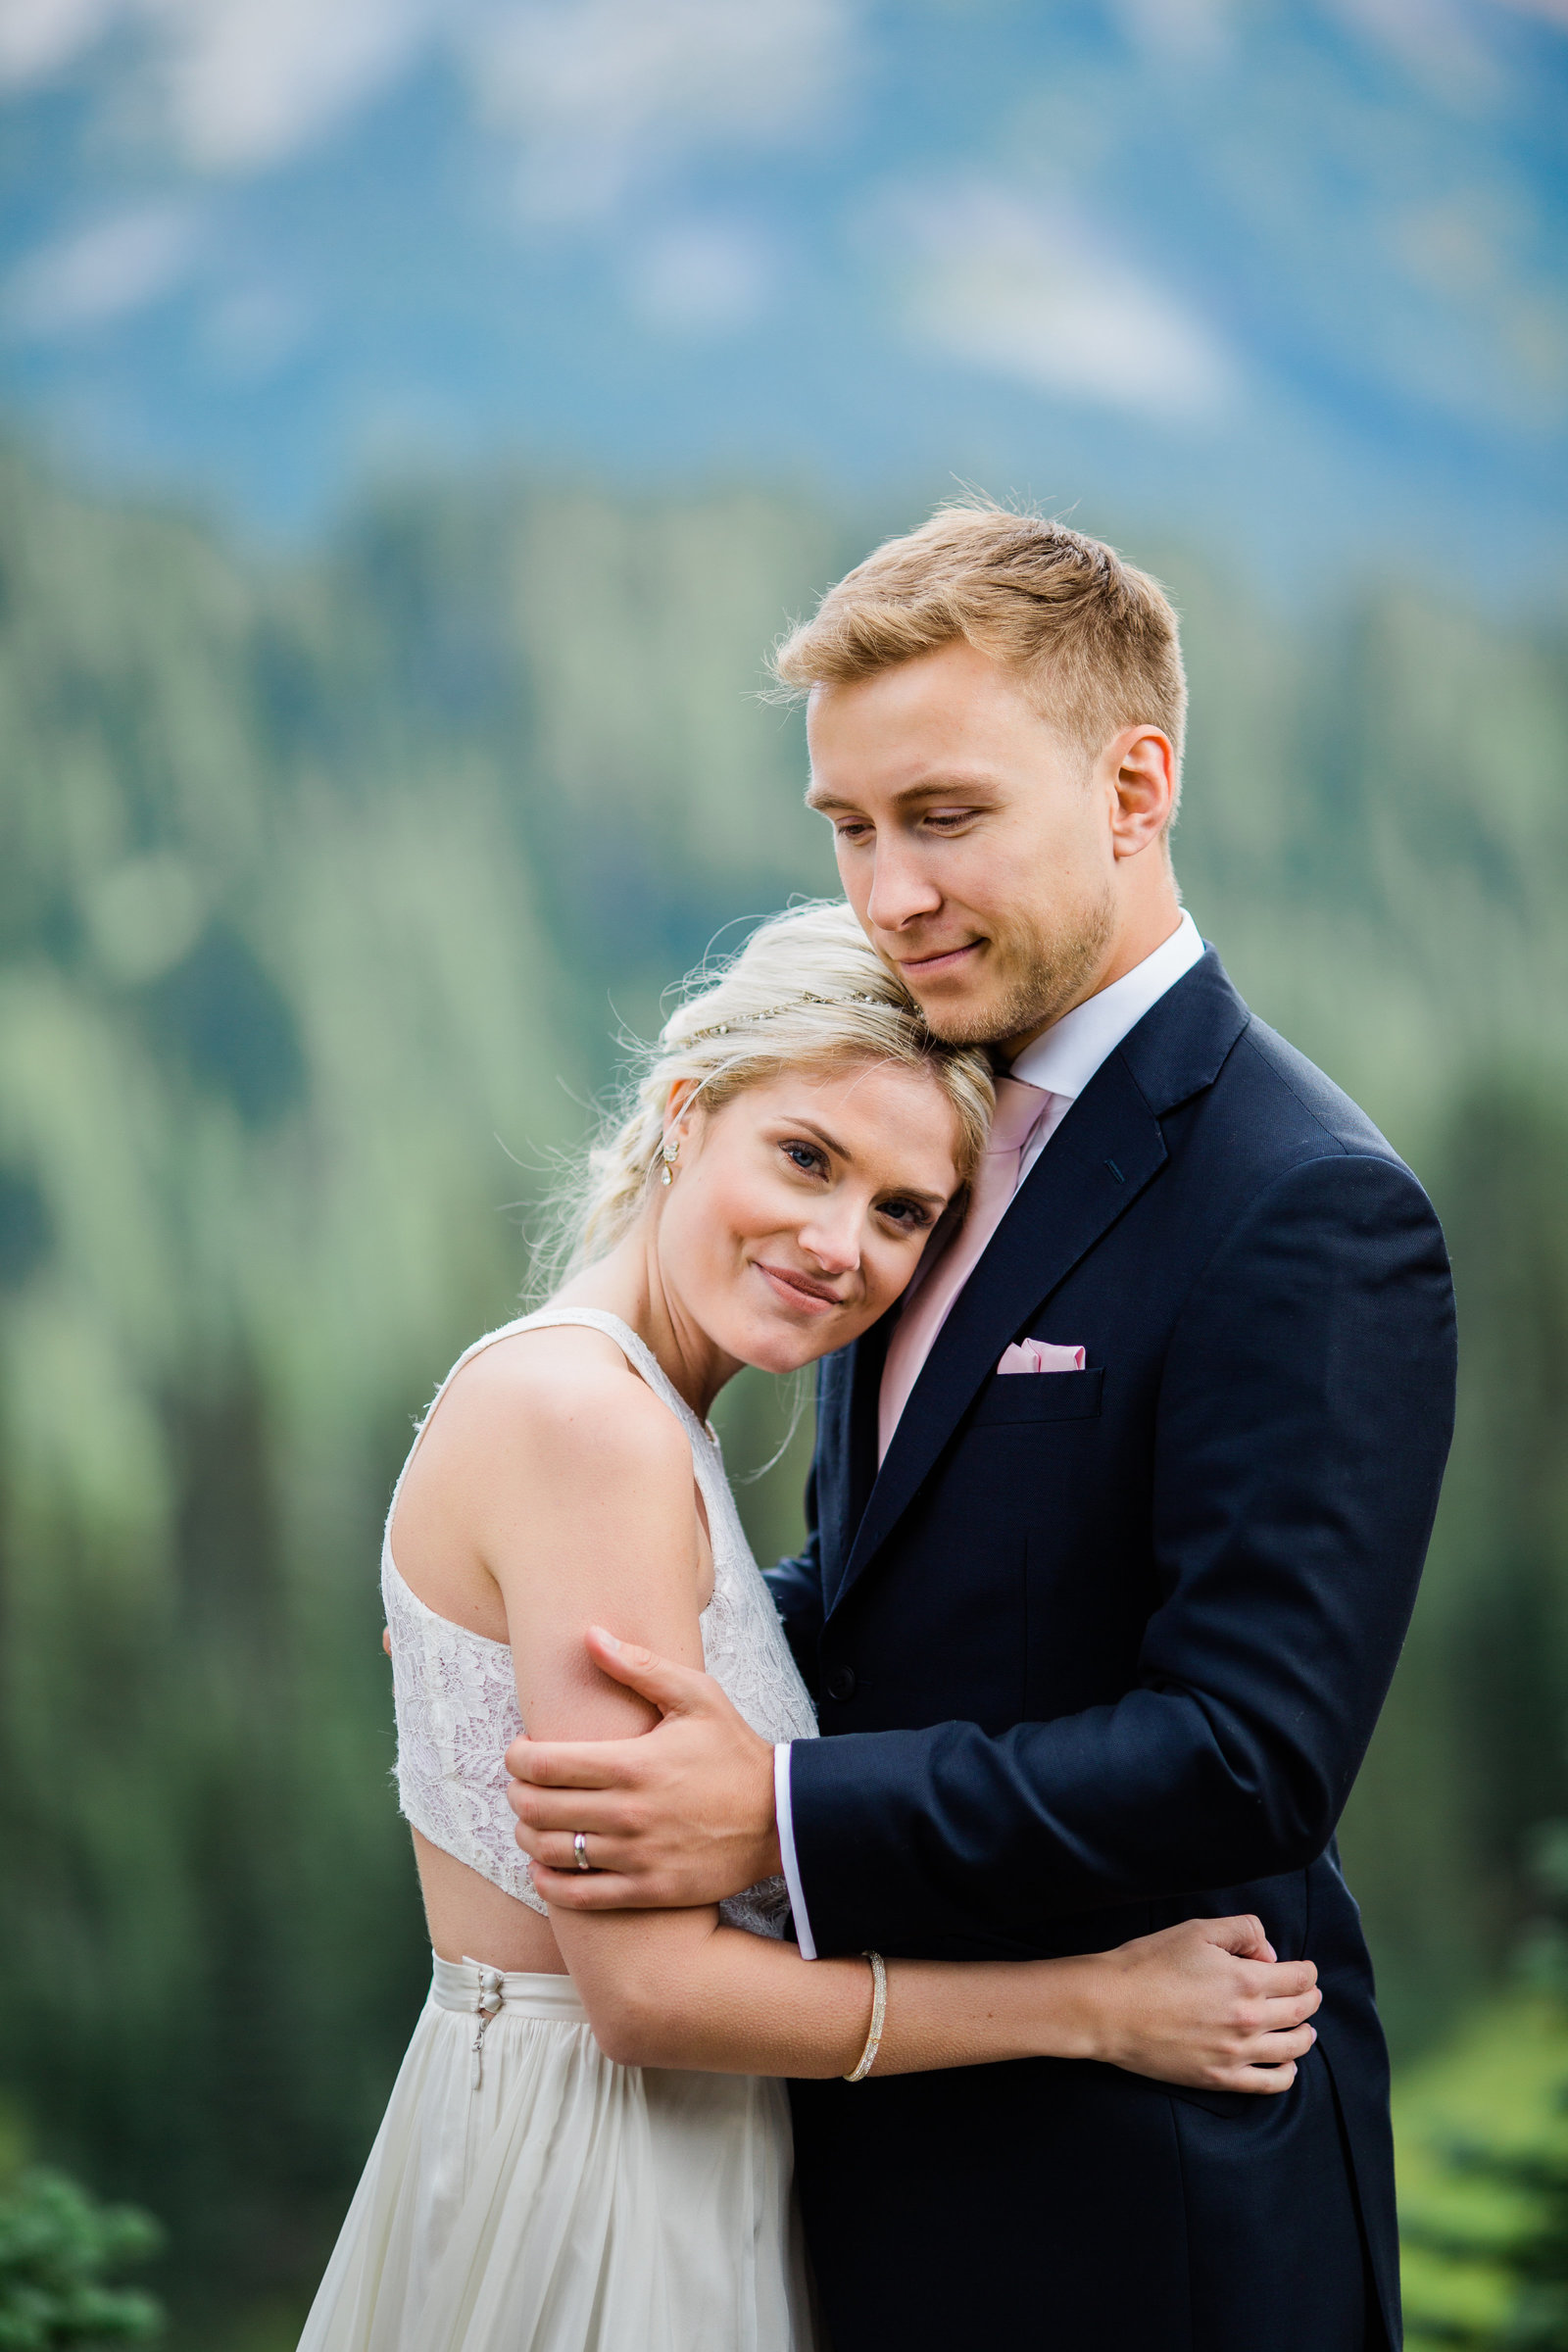 mount-rainier-national-park-elopement-cameron-zegers-photographer-seattle-183